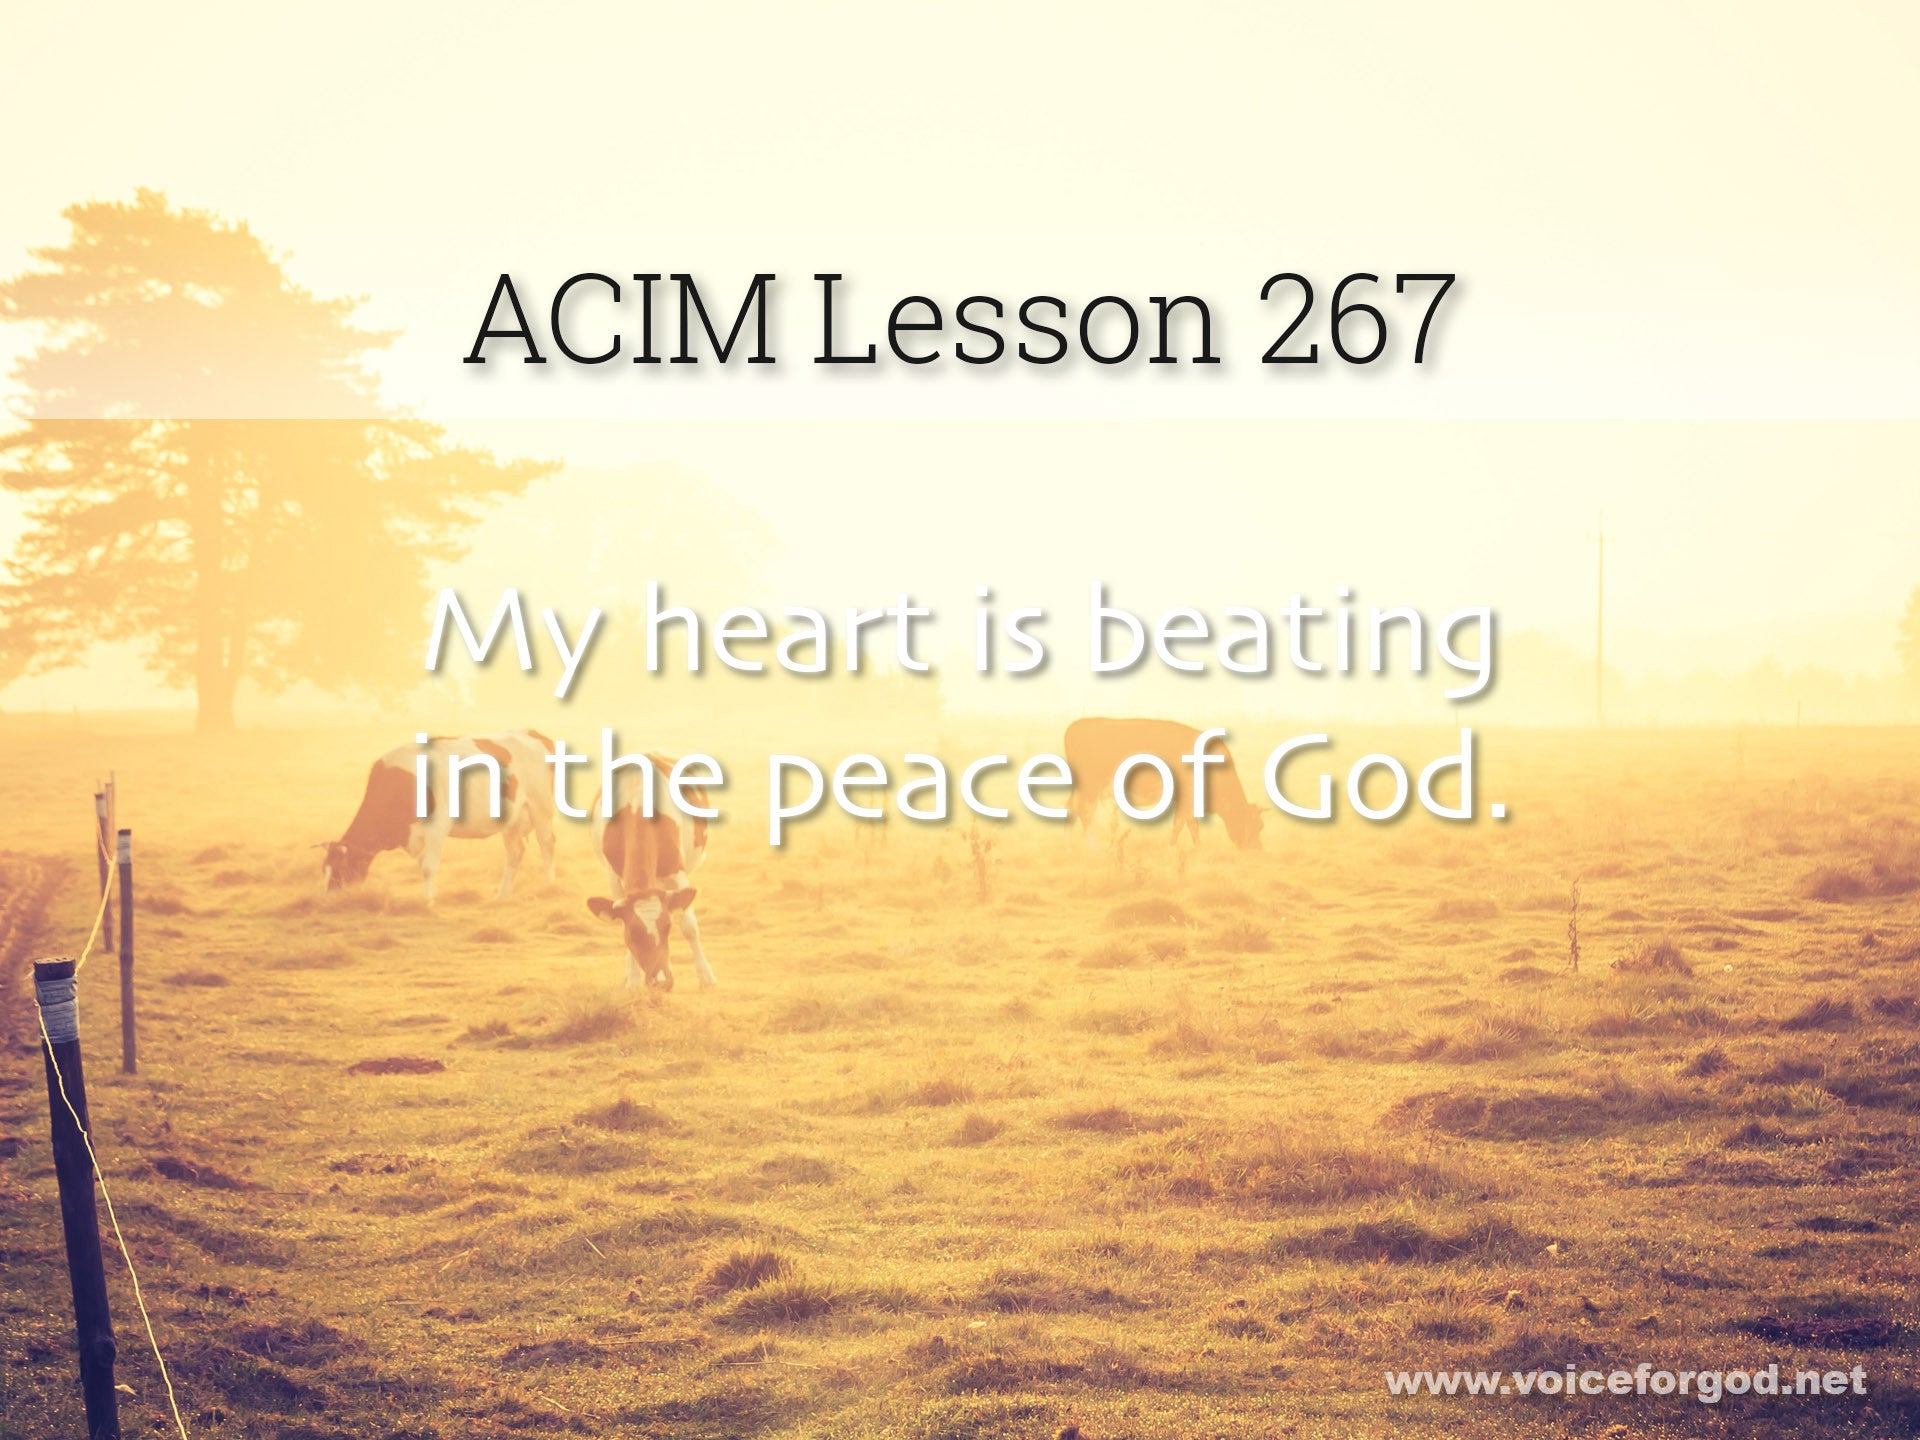 ACIM Lesson 267 - A Course in Miracles Workbook Lesson 267